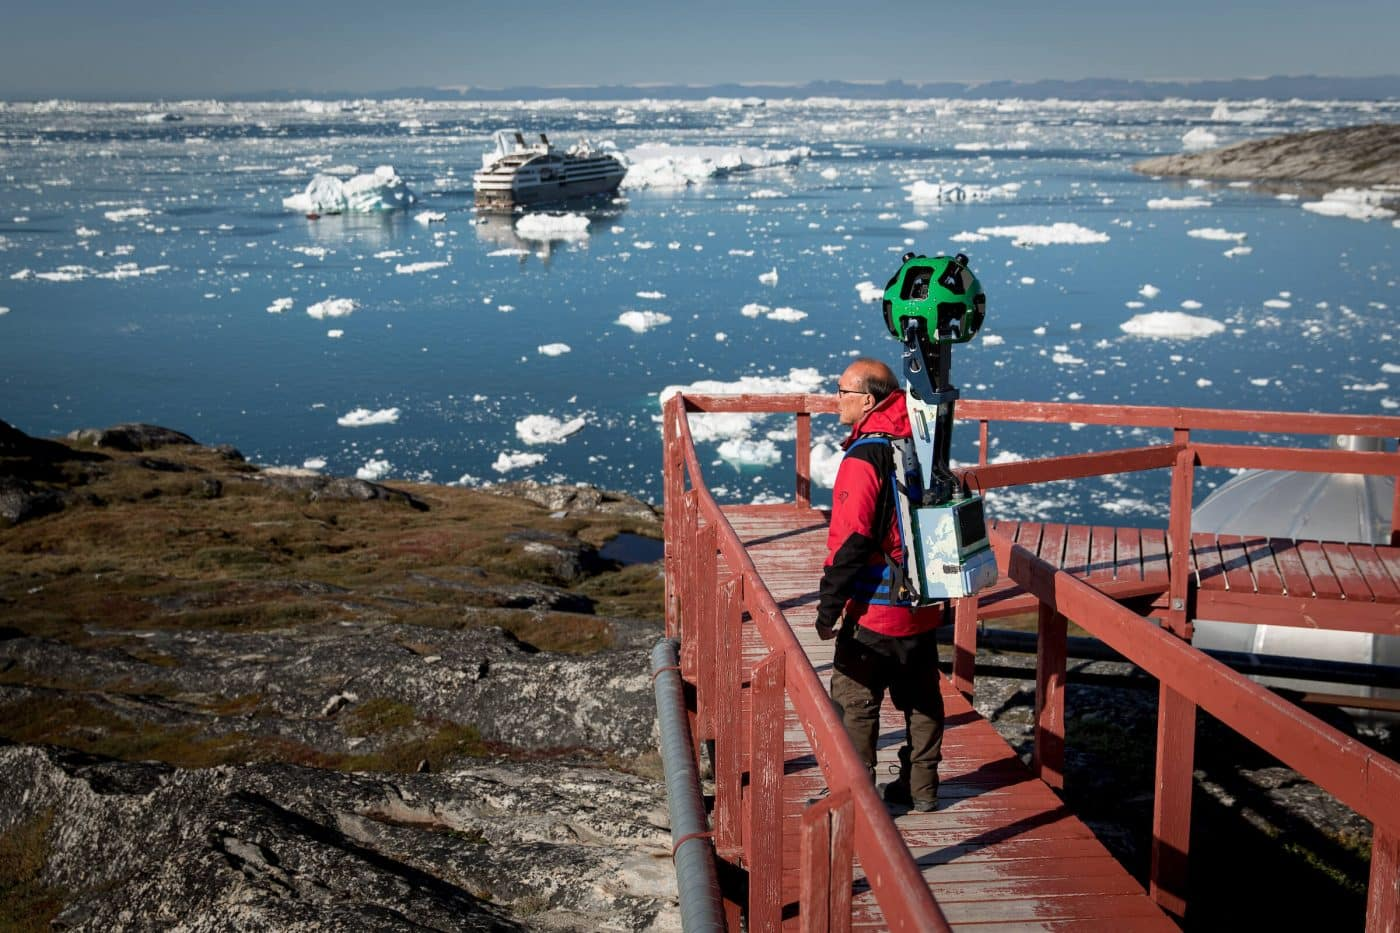 The Google Street View trekker at work near Hotel Arctic in Ilulissat in Greenland. By Mads Pihl